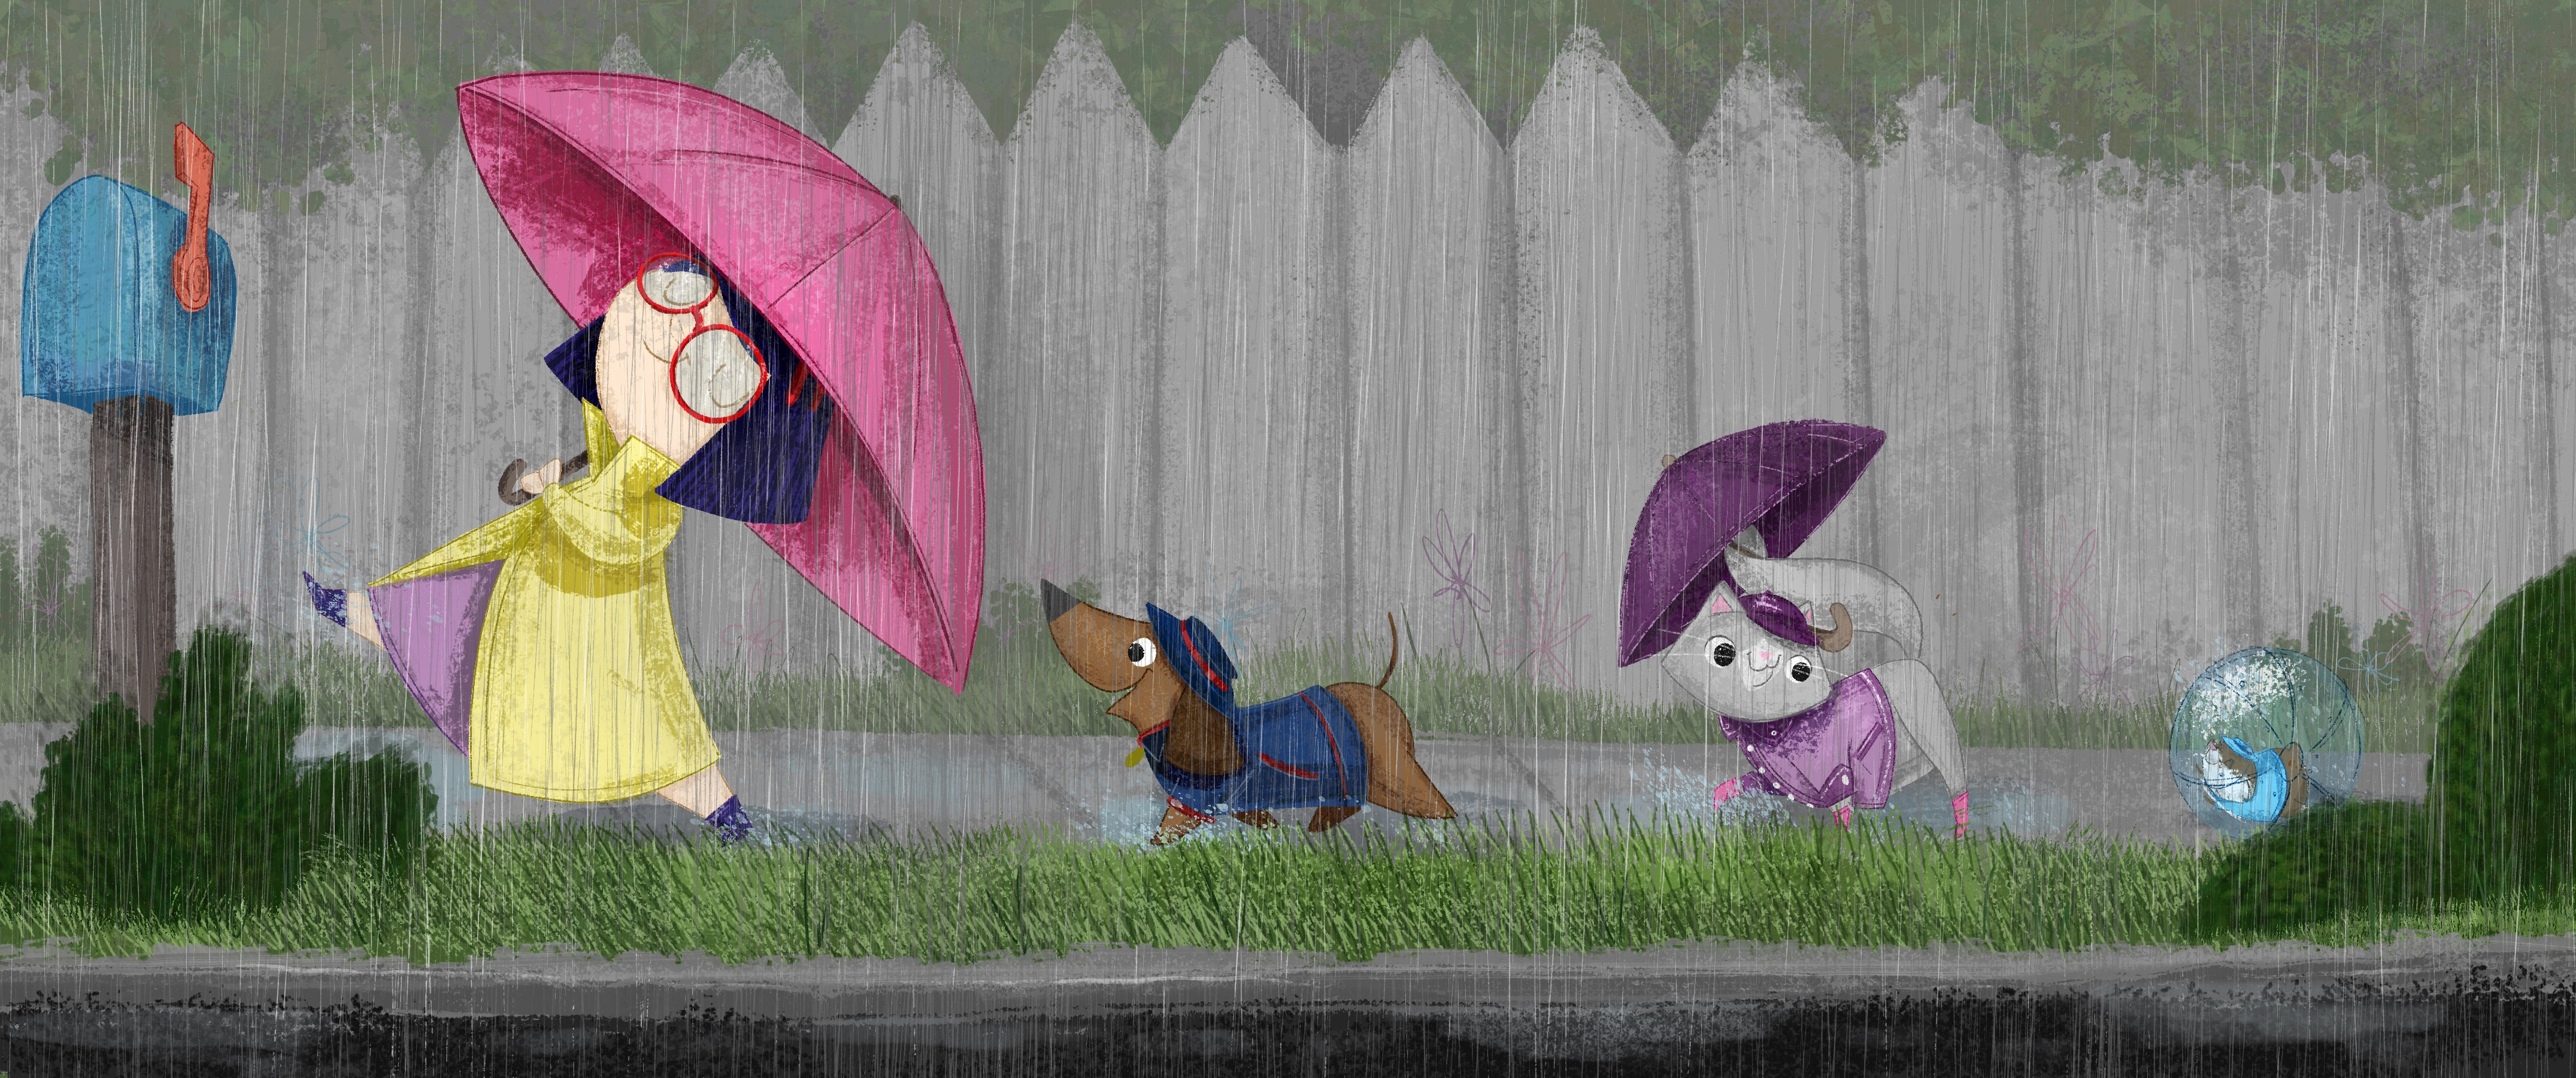 Rainy Day Brigade kidlit painting illustration book illustration kidlitart